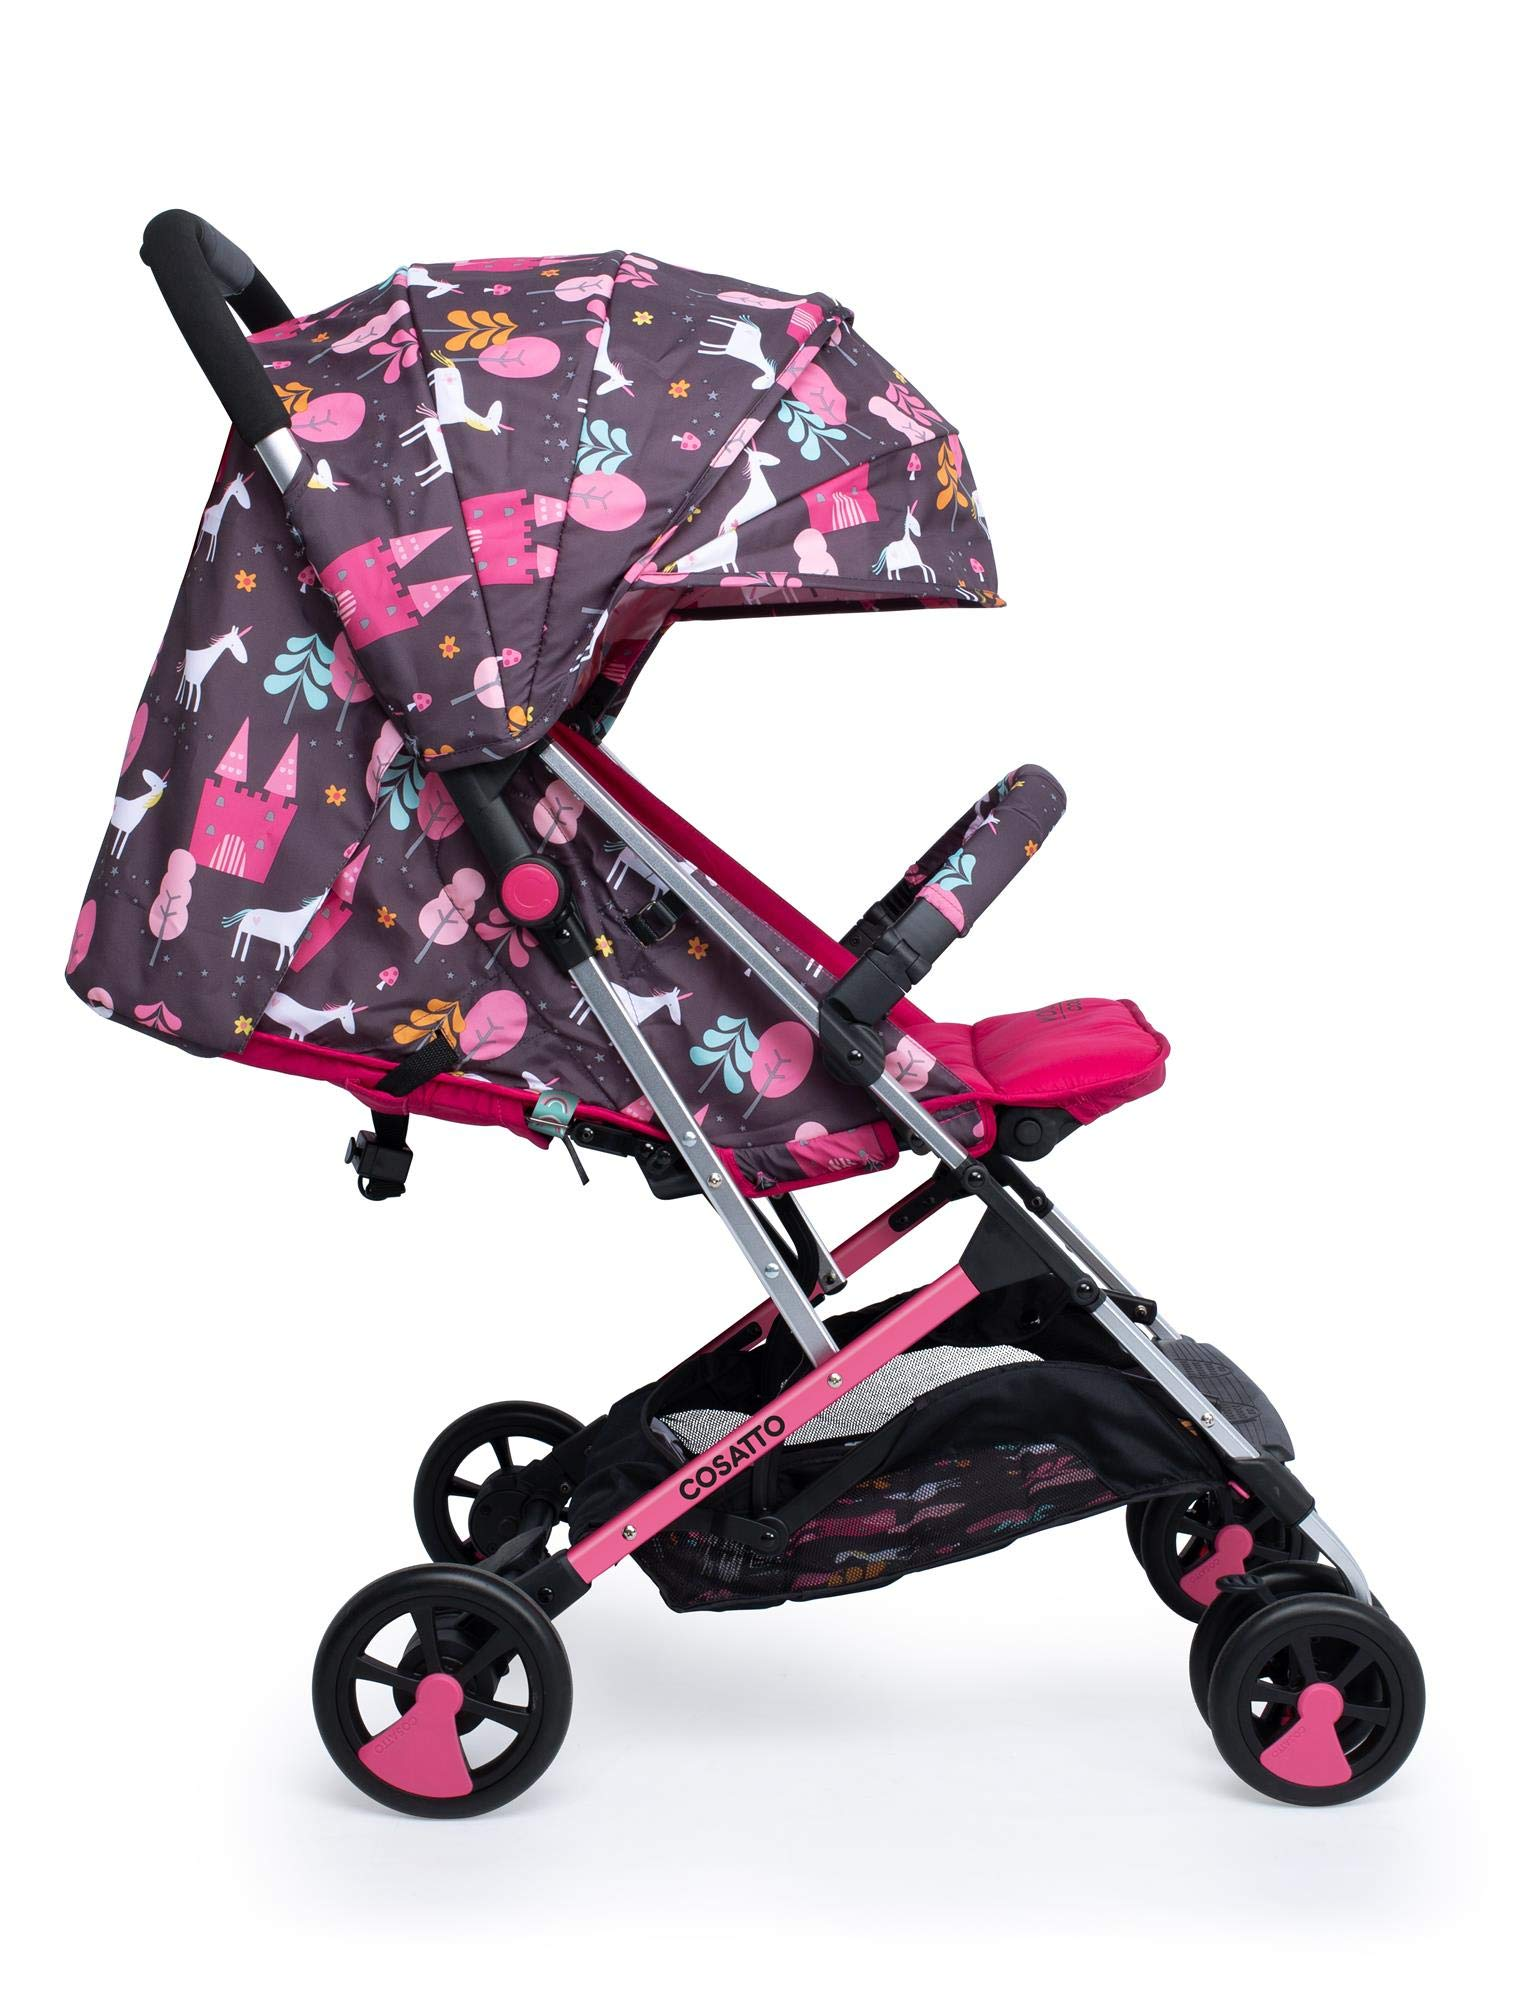 Cosatto CT4224 Woosh 2 Unicorn Land 7.2 kg Cosatto Suitable from birth to max weight of 25kg, lets your toddler use it for even longer Lightweight, sturdy aluminium frame New-born recline 1